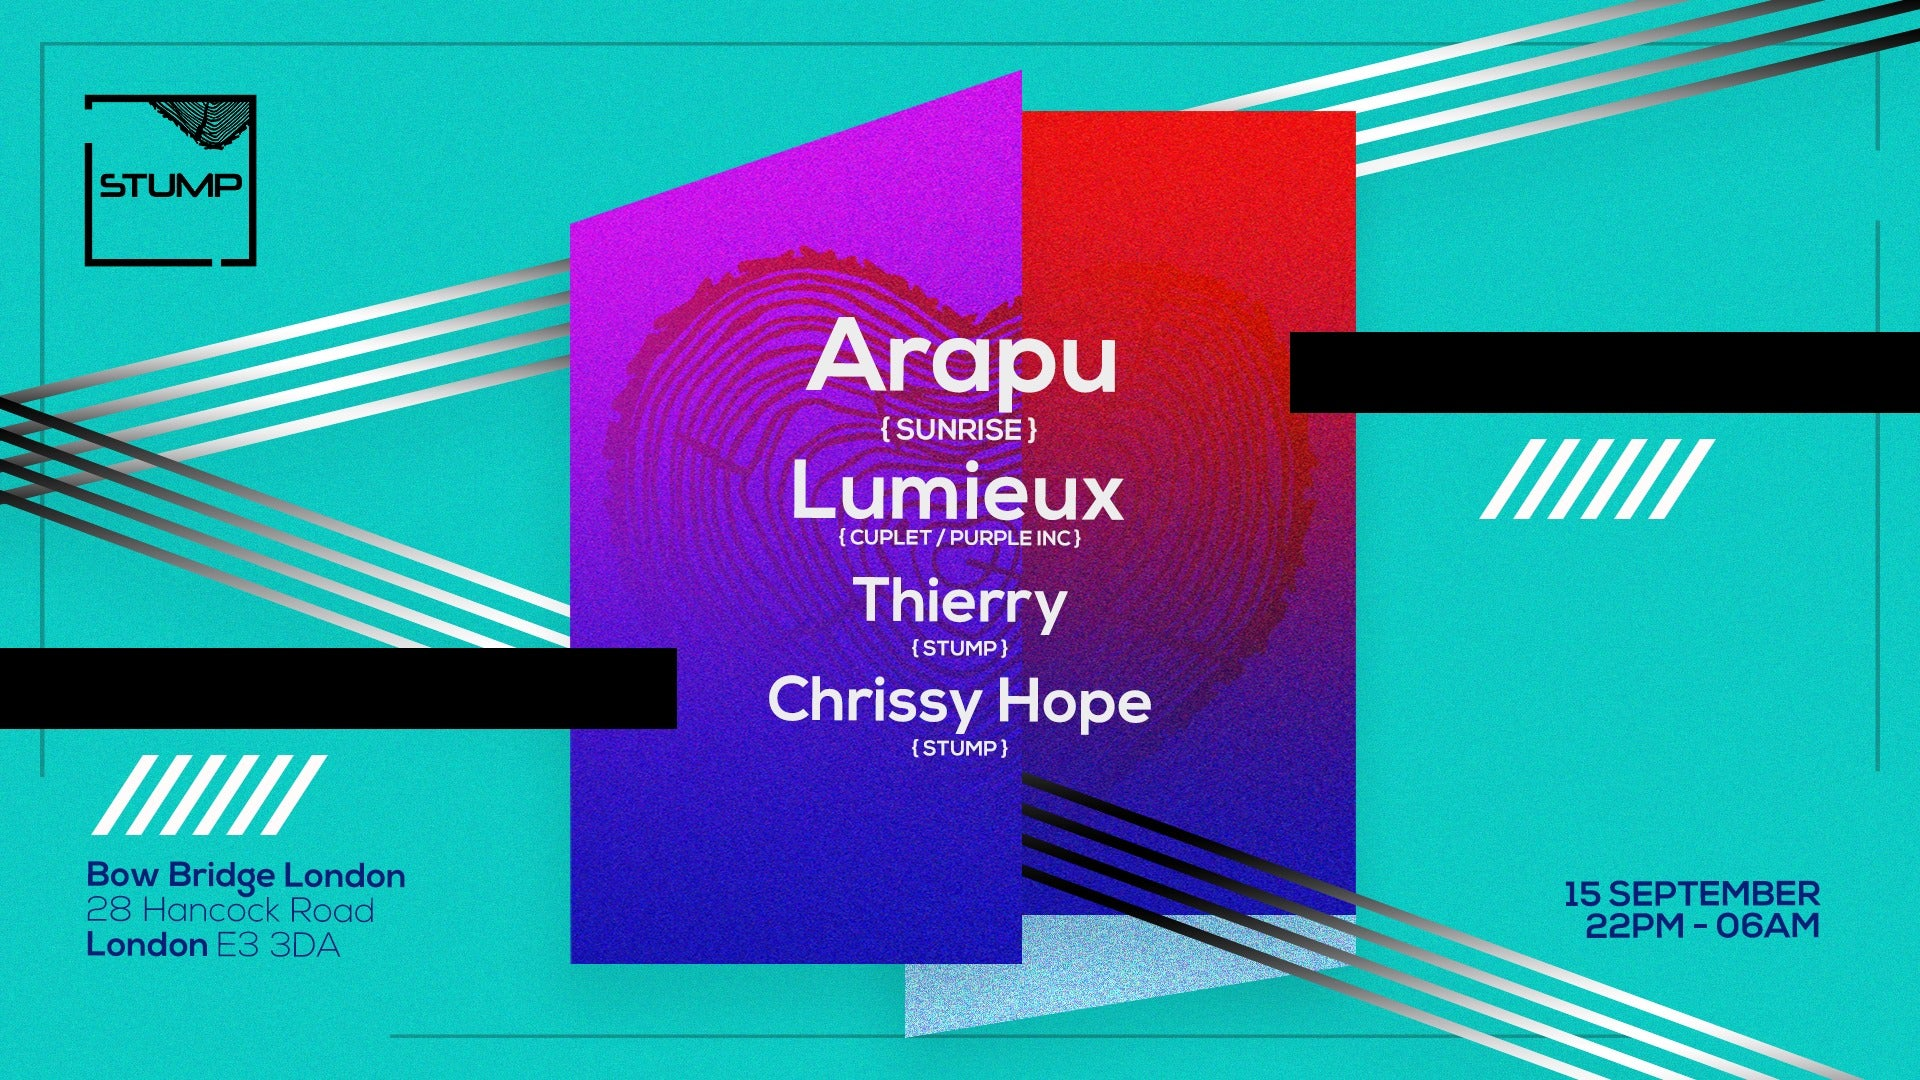 Tickets for 15-09-2017 Stump. with Arapu,Lumieux,Thierry,Chrissy Hope